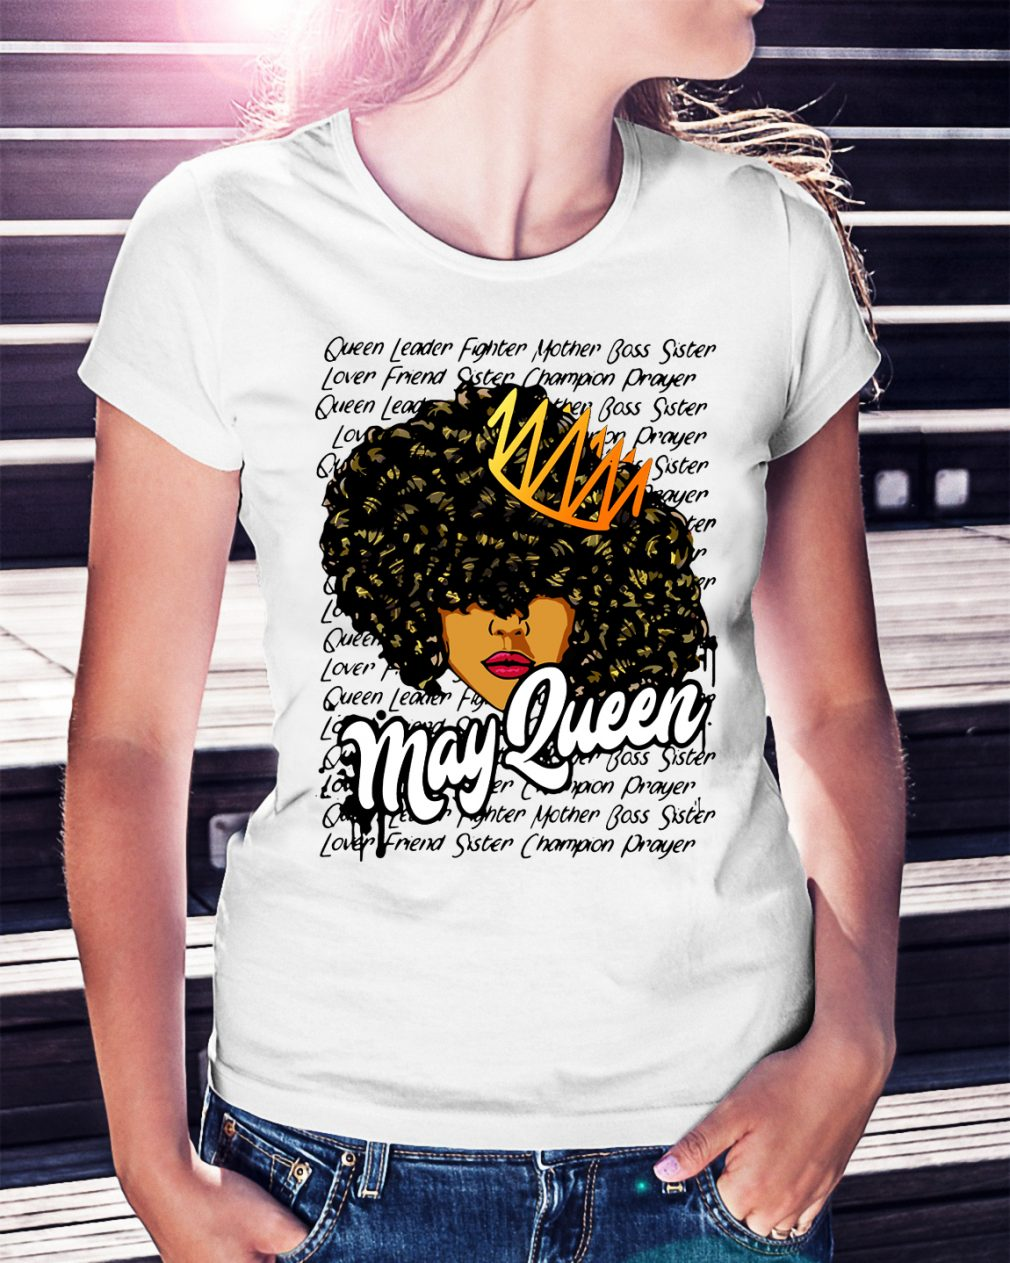 May queen leader fighter mother boss sister shirt